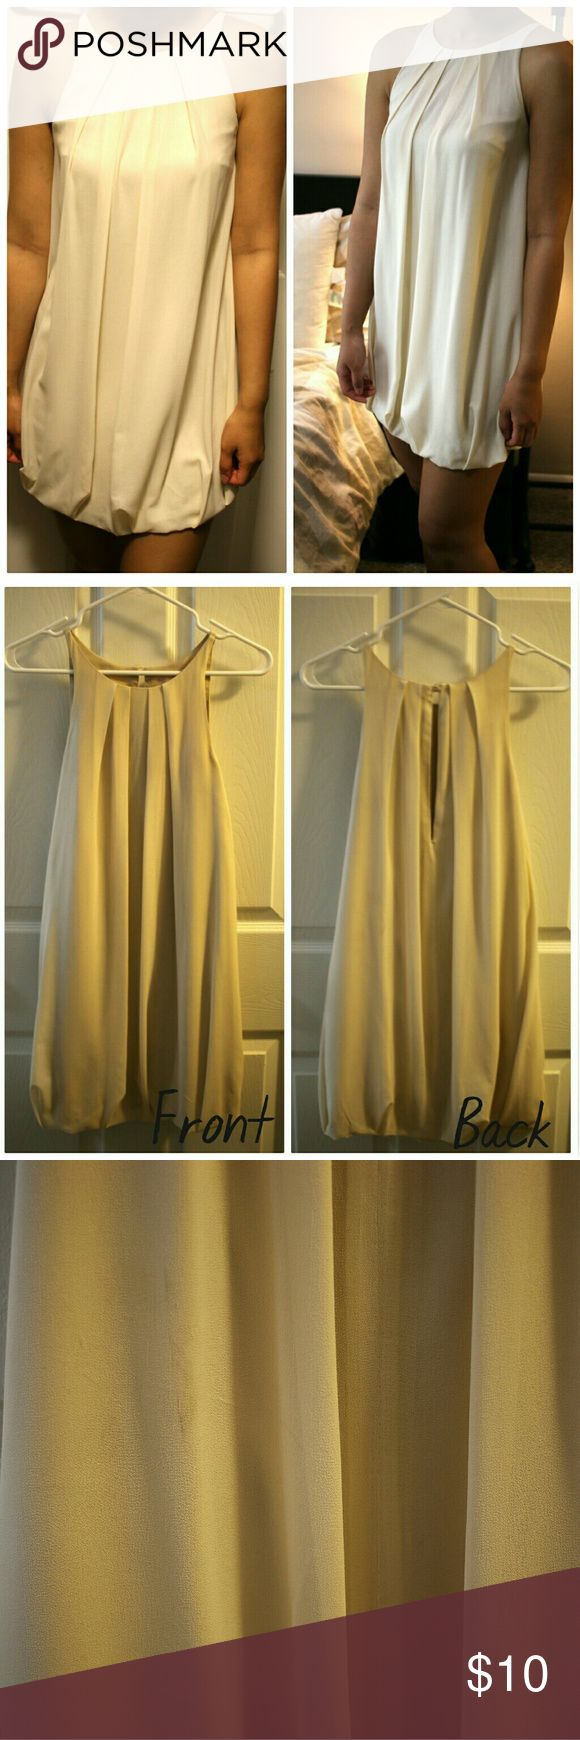 """Elegant Cream Party/wedding theme Dress Absolutely beautiful dress. Beautiful cream color. Nice and soft chiffon fabric. Very comfortable to wear and perfect for a night out. Has no size on it but would fit both S and M. Length is about 26"""" from top to bottom. It has small stain on the back as shown in the last photo but very hard to spot when you're wearing it. Only worn once or twice.    If you like it, feel free to send me an offer :) Korean Brand Dresses"""